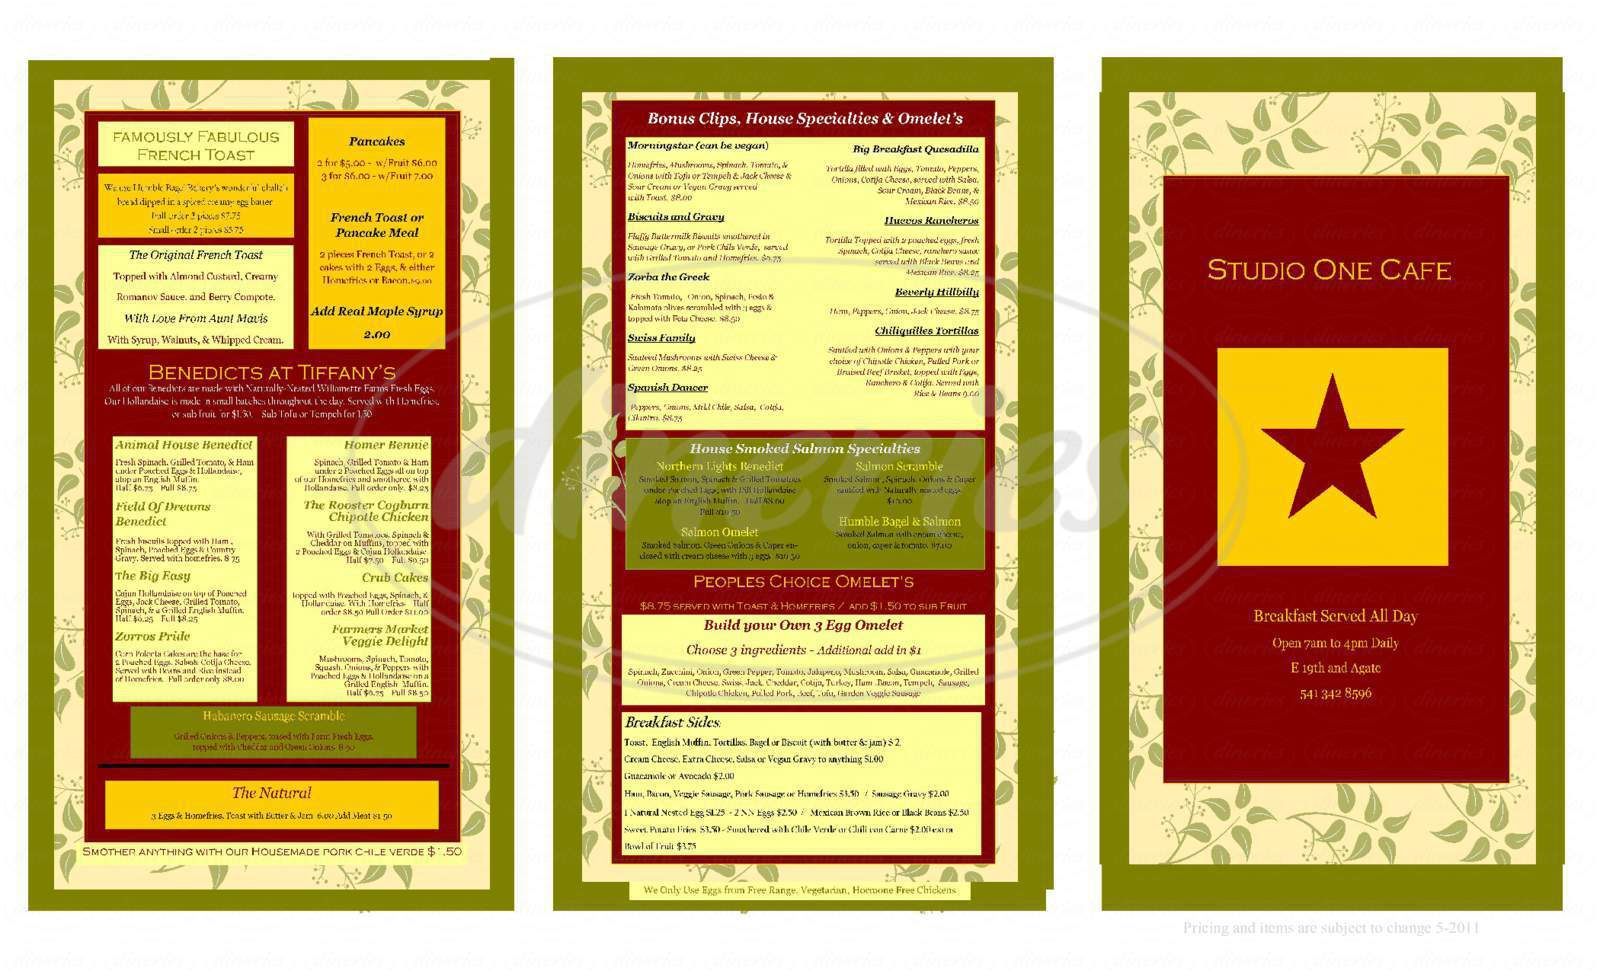 menu for Studio One Cafe